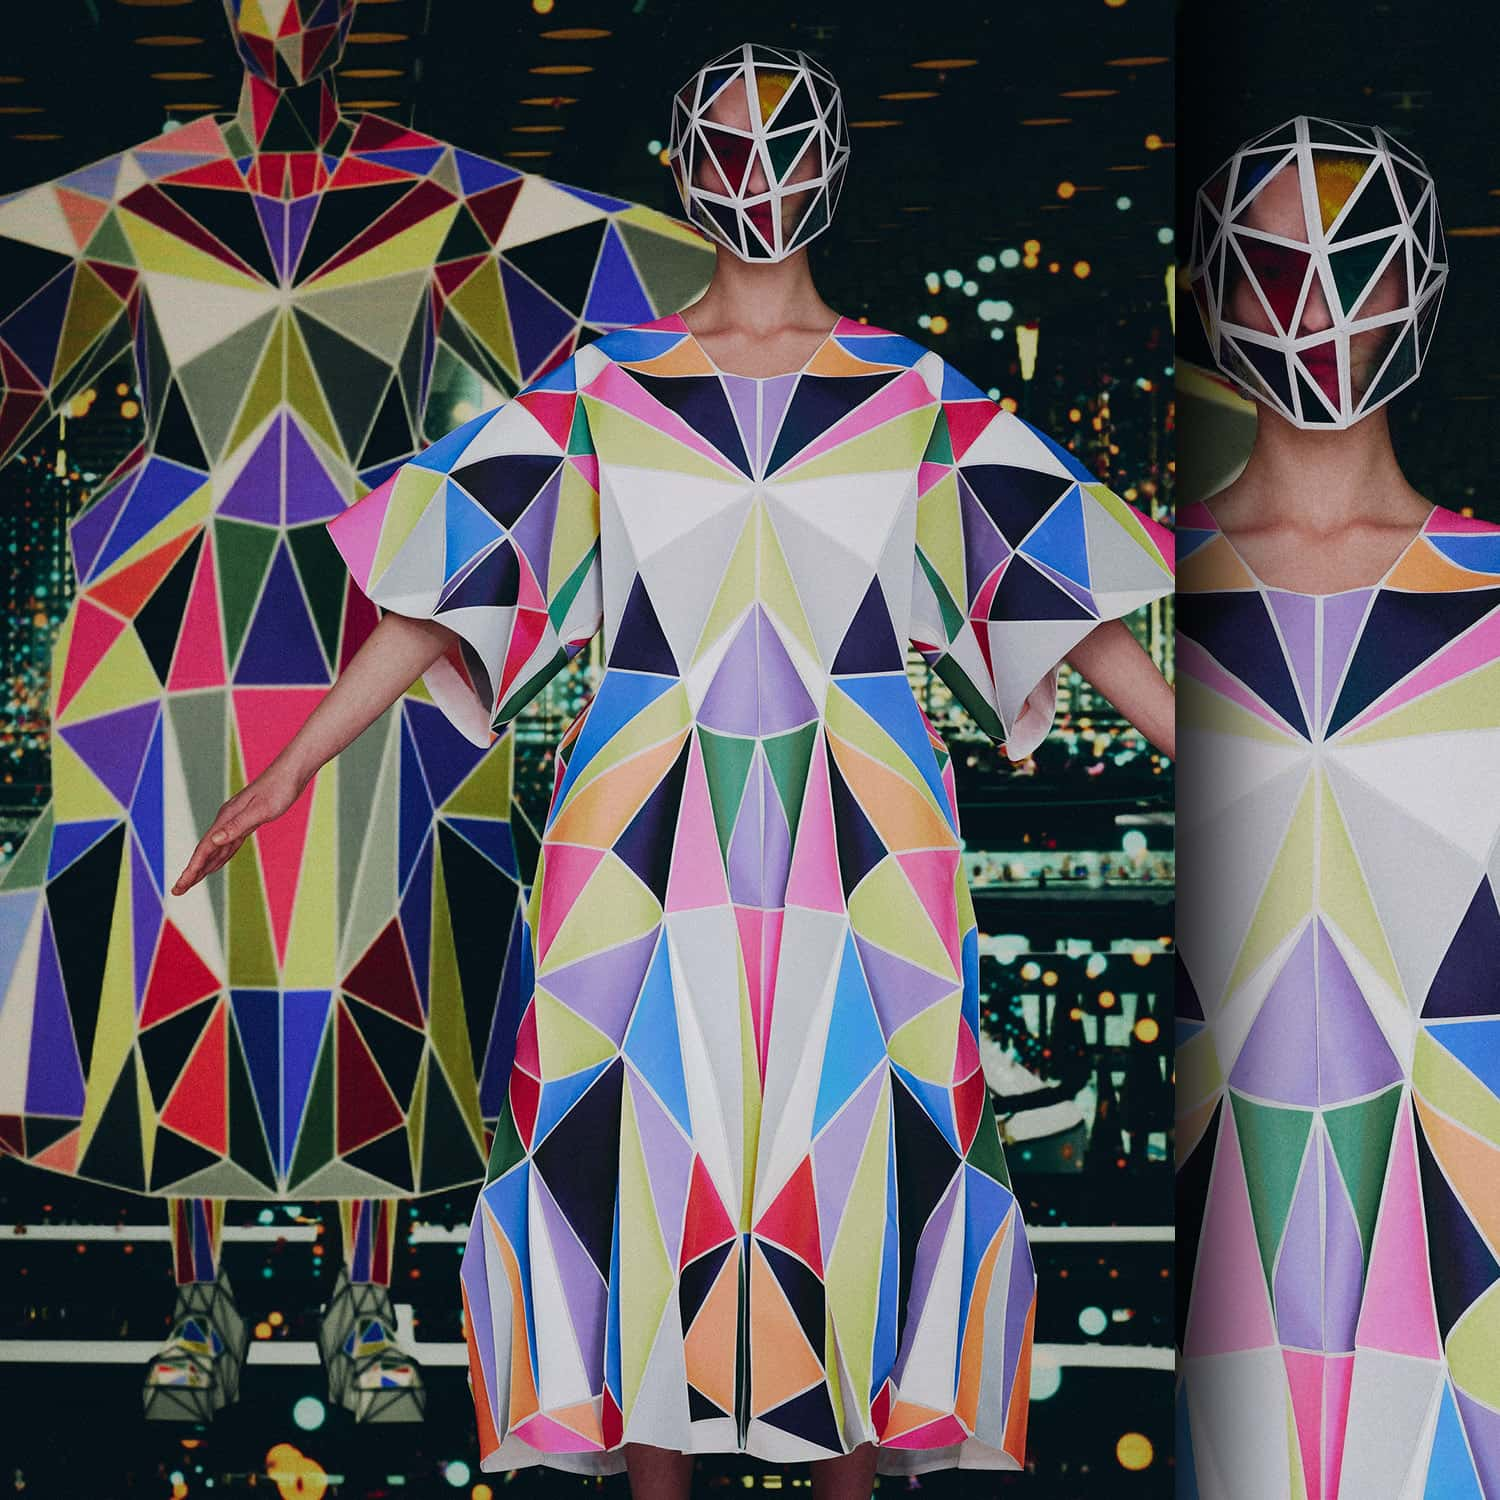 Anrealage Dimention at U NFT Spring Summer 2022. RUNWAY MAGAZINE ® Collections. RUNWAY NOW / RUNWAY NEW